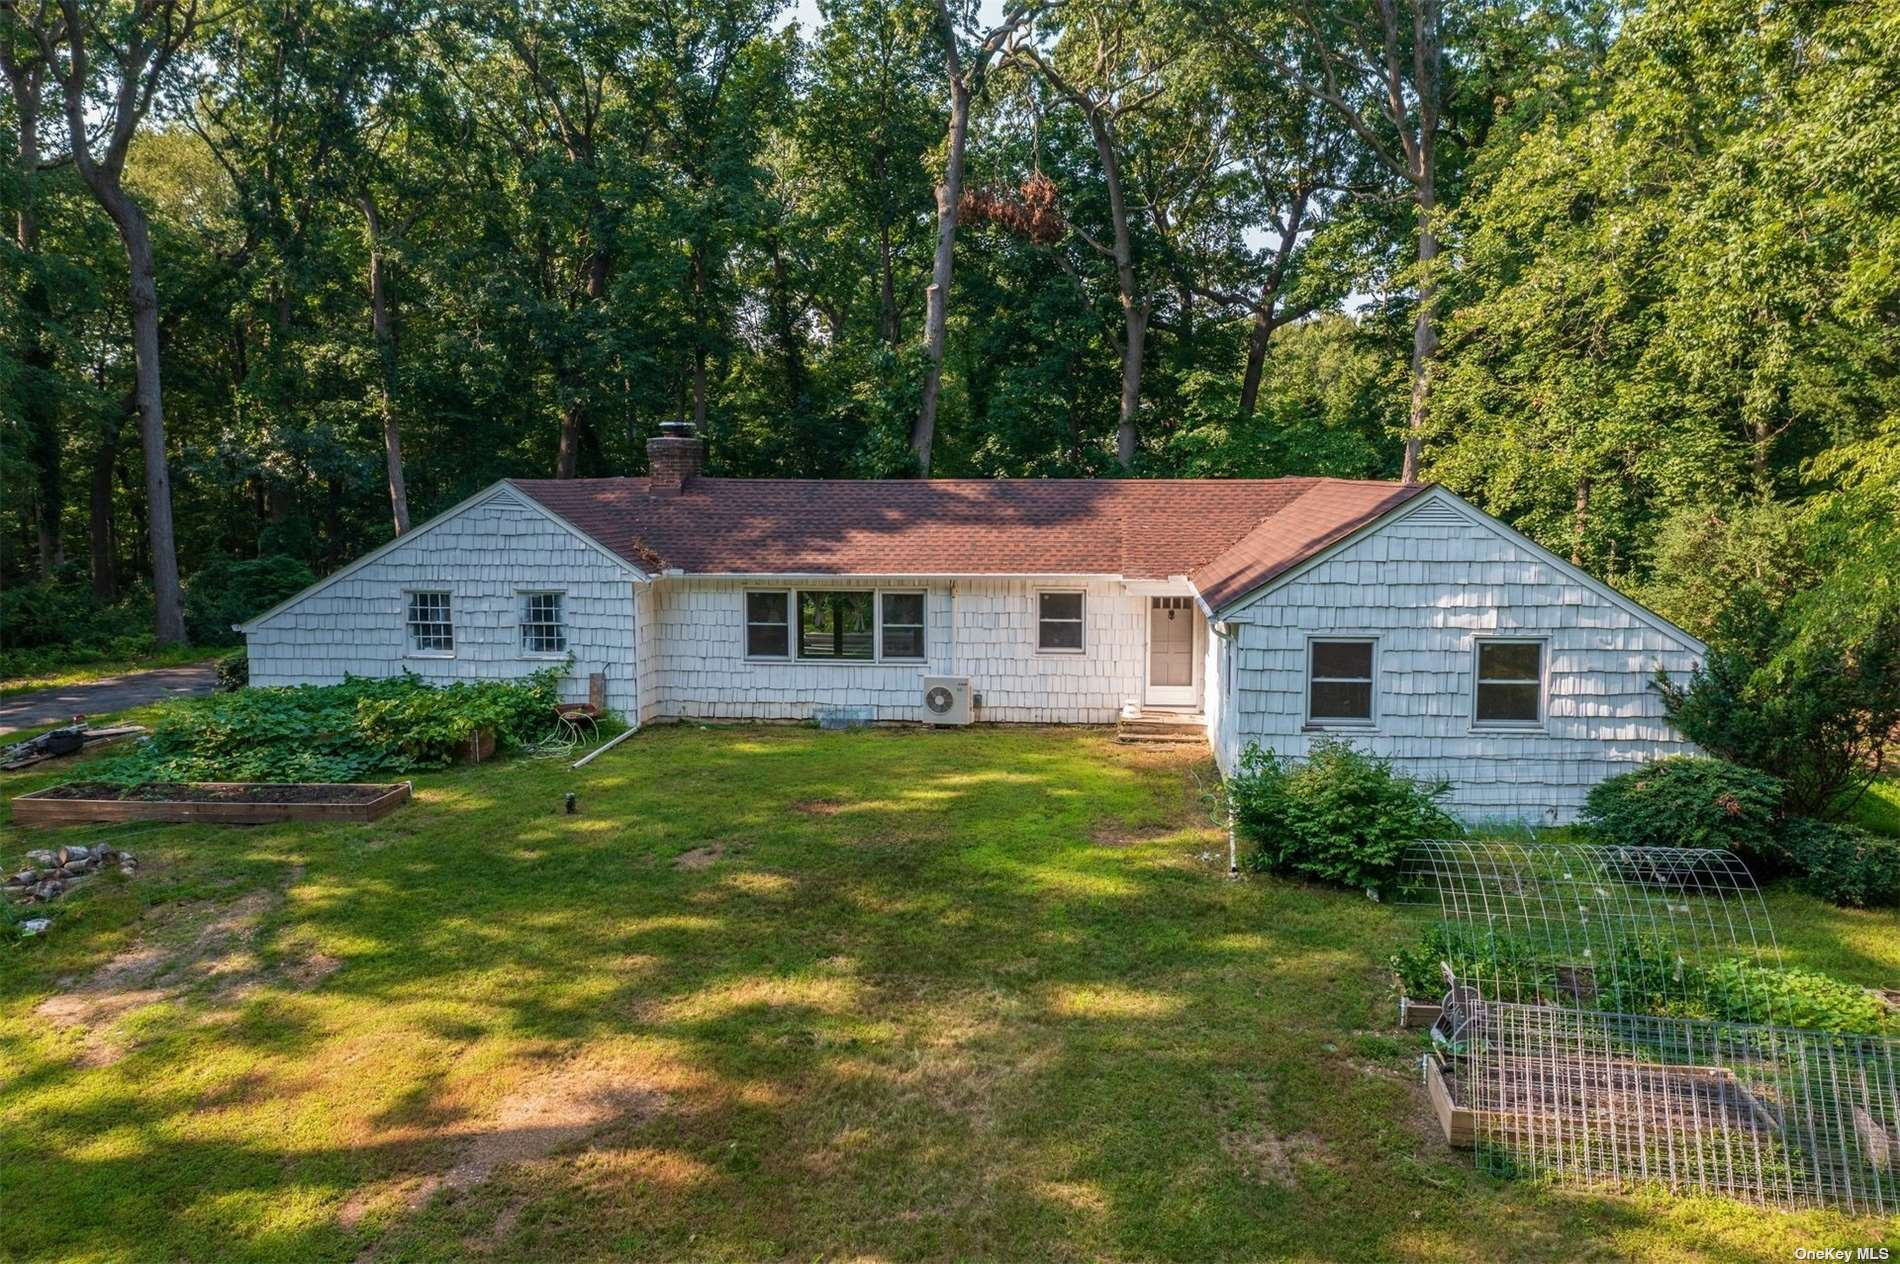 Location! Location! Close to Private Beach, Target Wild Life Preserve & Caumsett State Park. 3 Bedroom, 2 Bath Ranch Nestled on Sprawling 2 Acres w/Wood-Burning Fireplace. Beach Rights.